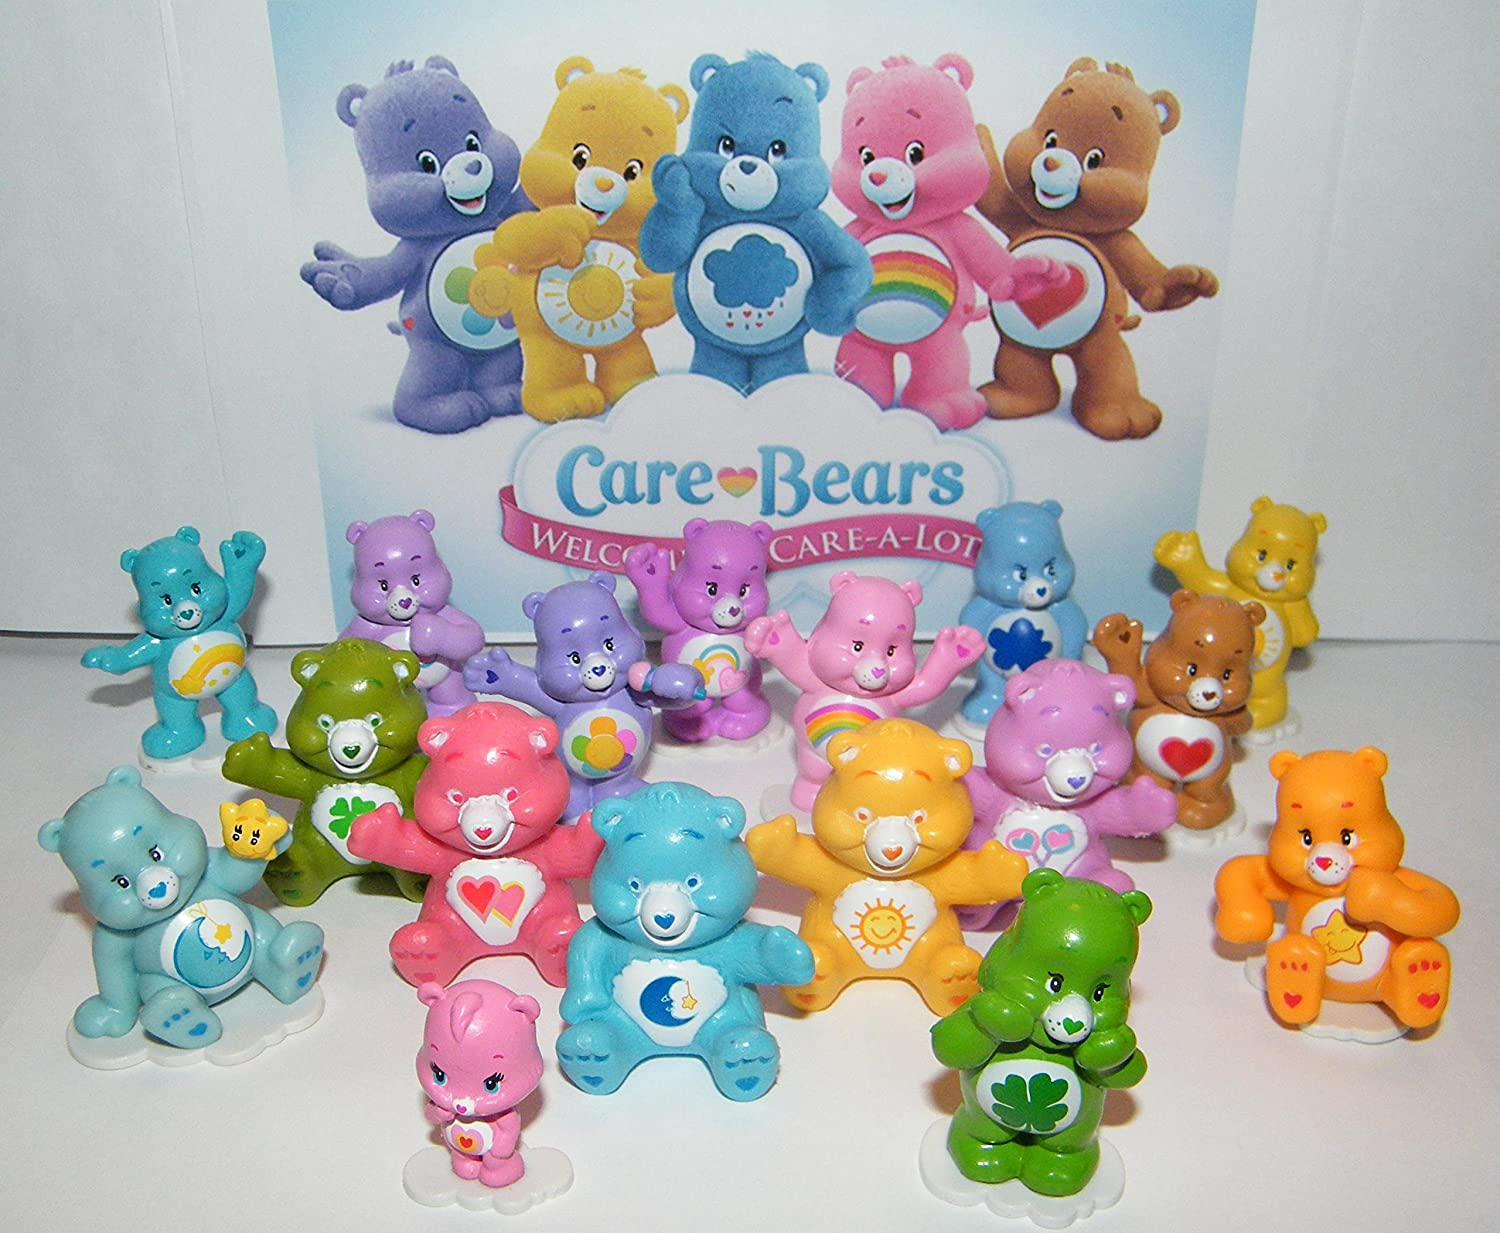 Care Bear Deluxe Figure Toy Set Of 17 Different Care Bears With Wonderheart Bear, Funshine Bear, Cheer Bear And Many More! by Care Bears